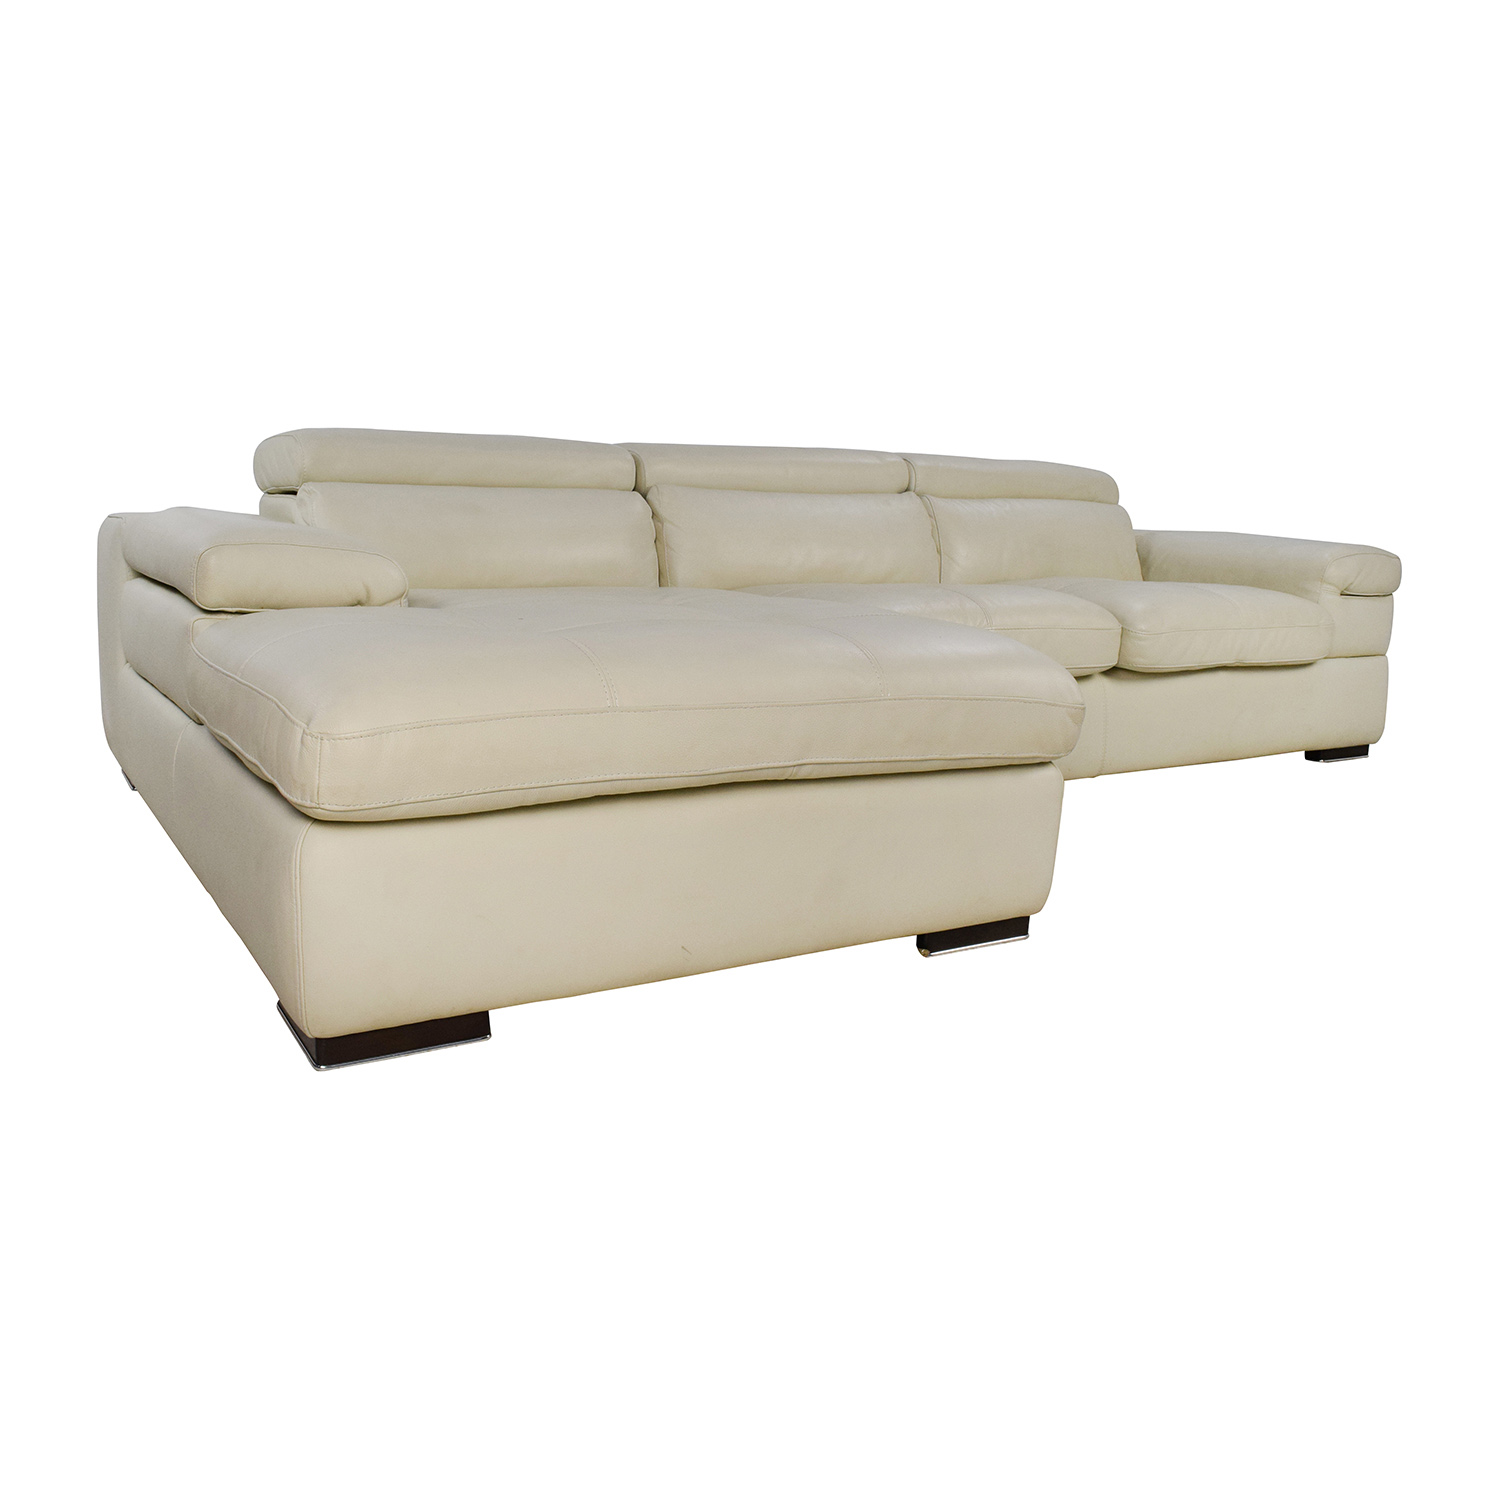 ... L-Shaped Cream Leather Sectional Sofa second hand ...  sc 1 st  Furnishare : dunham sectional - Sectionals, Sofas & Couches